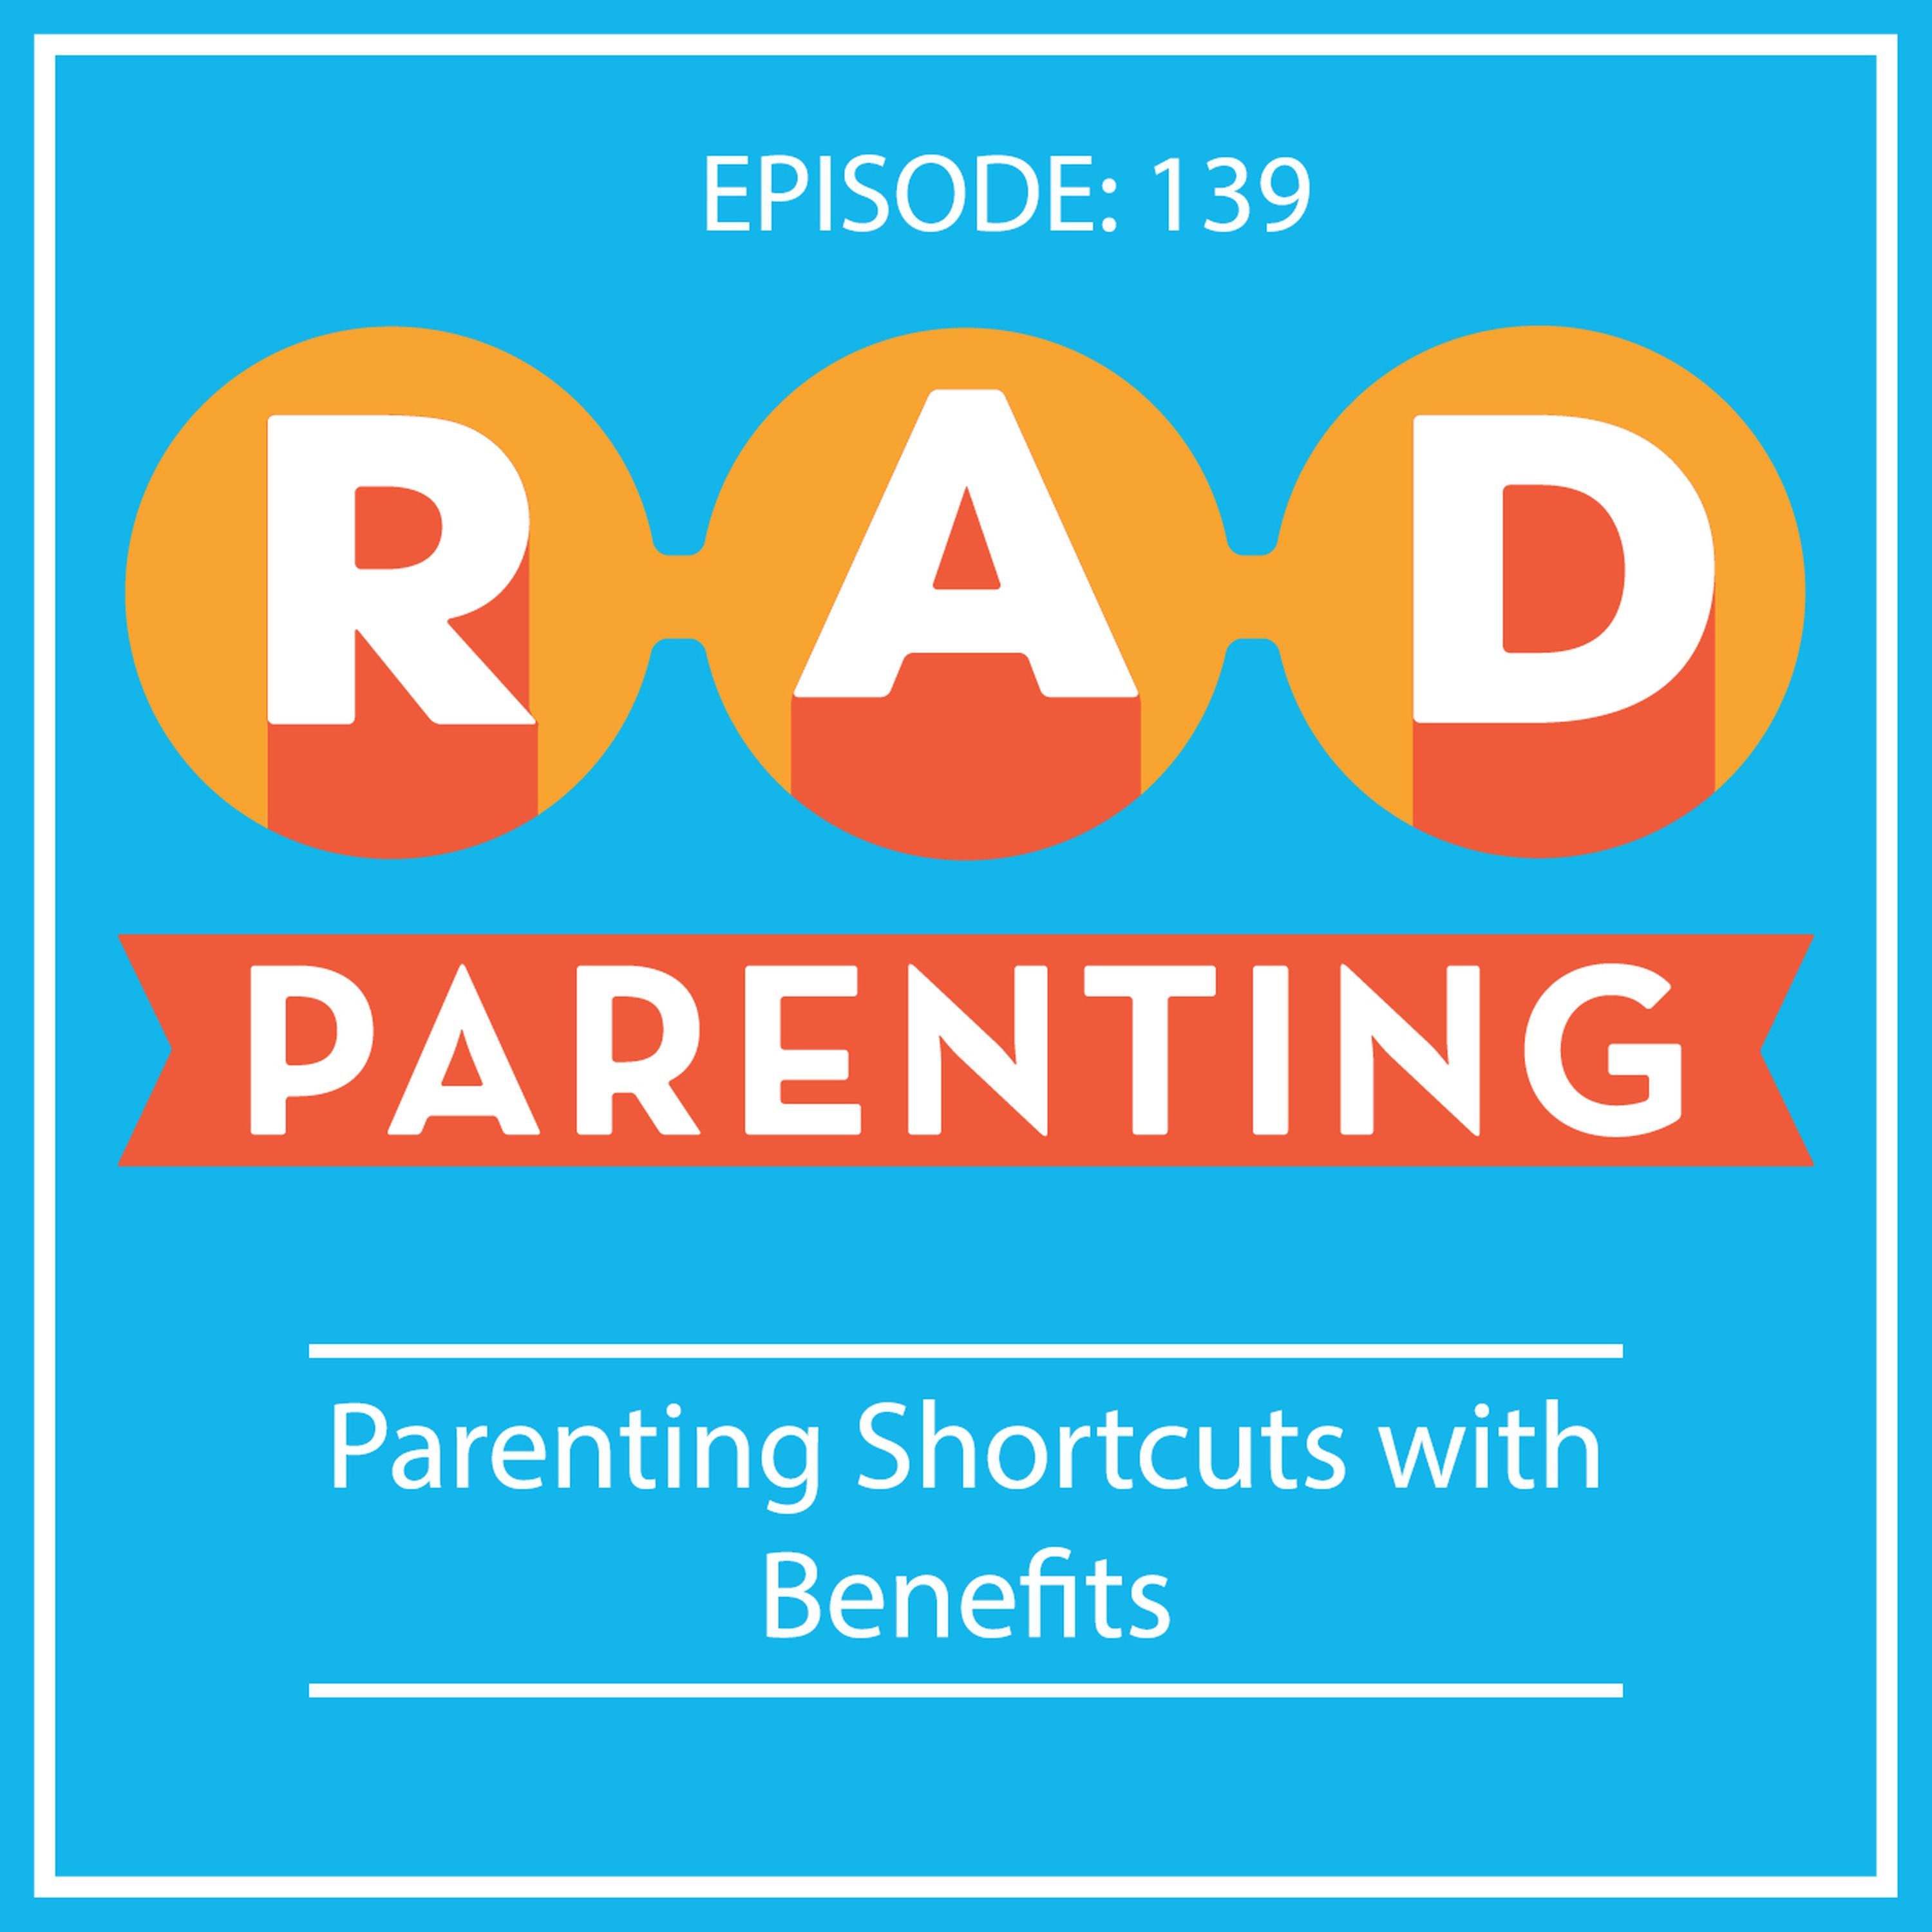 Parenting Shortcuts with Benefits